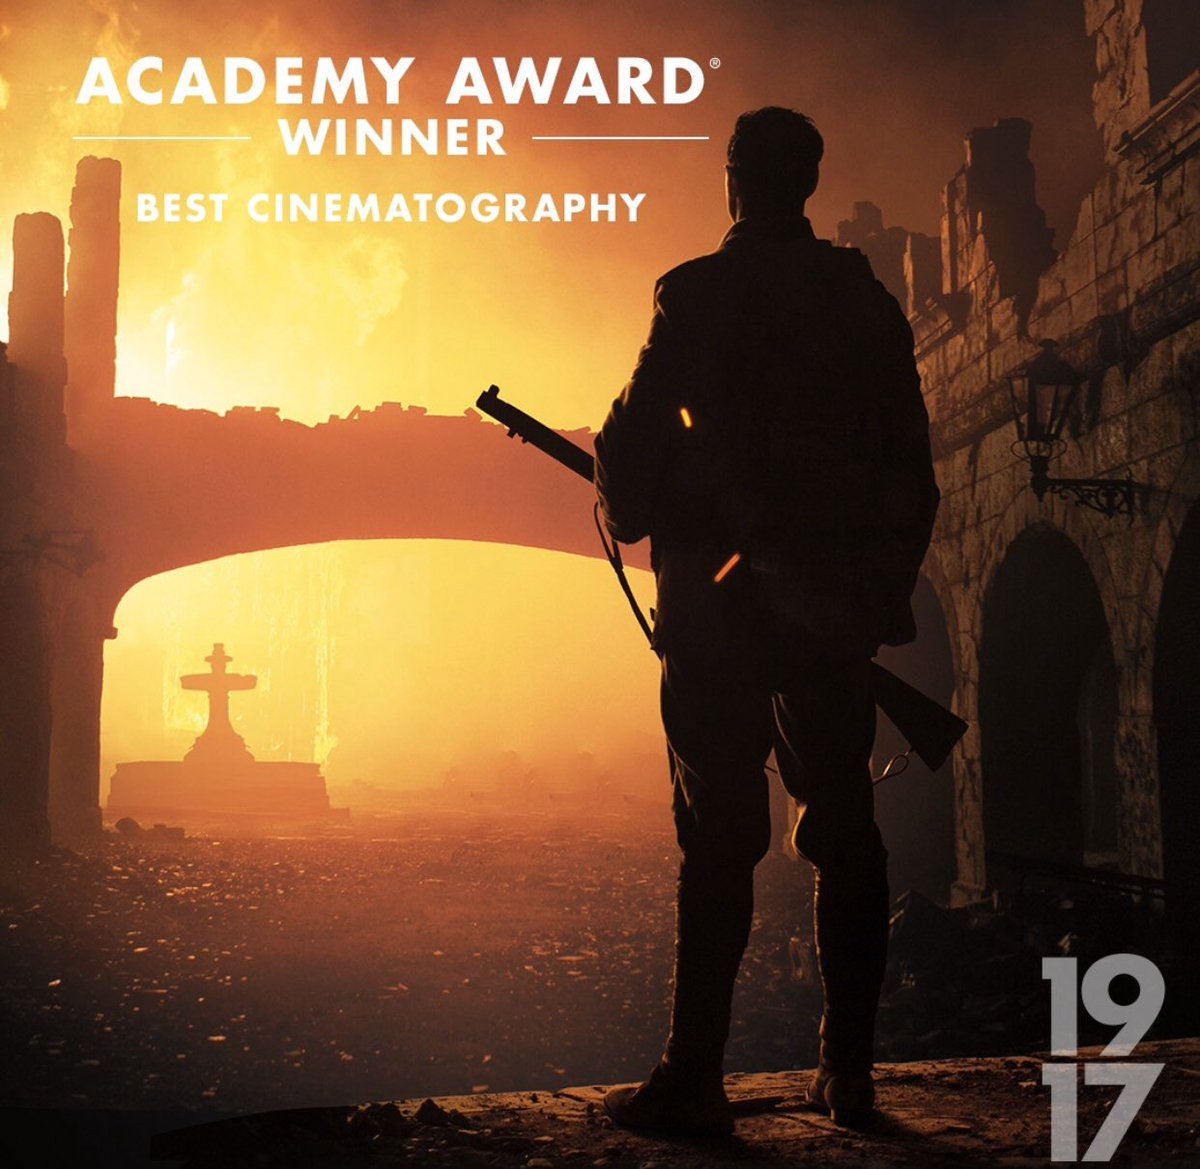 #1917Film is the winner of 3 #Oscars including Best Cinematography - @deakinsarchives, Best Visual Effects and Best Sound Mixing. In cinemas everywhere now.